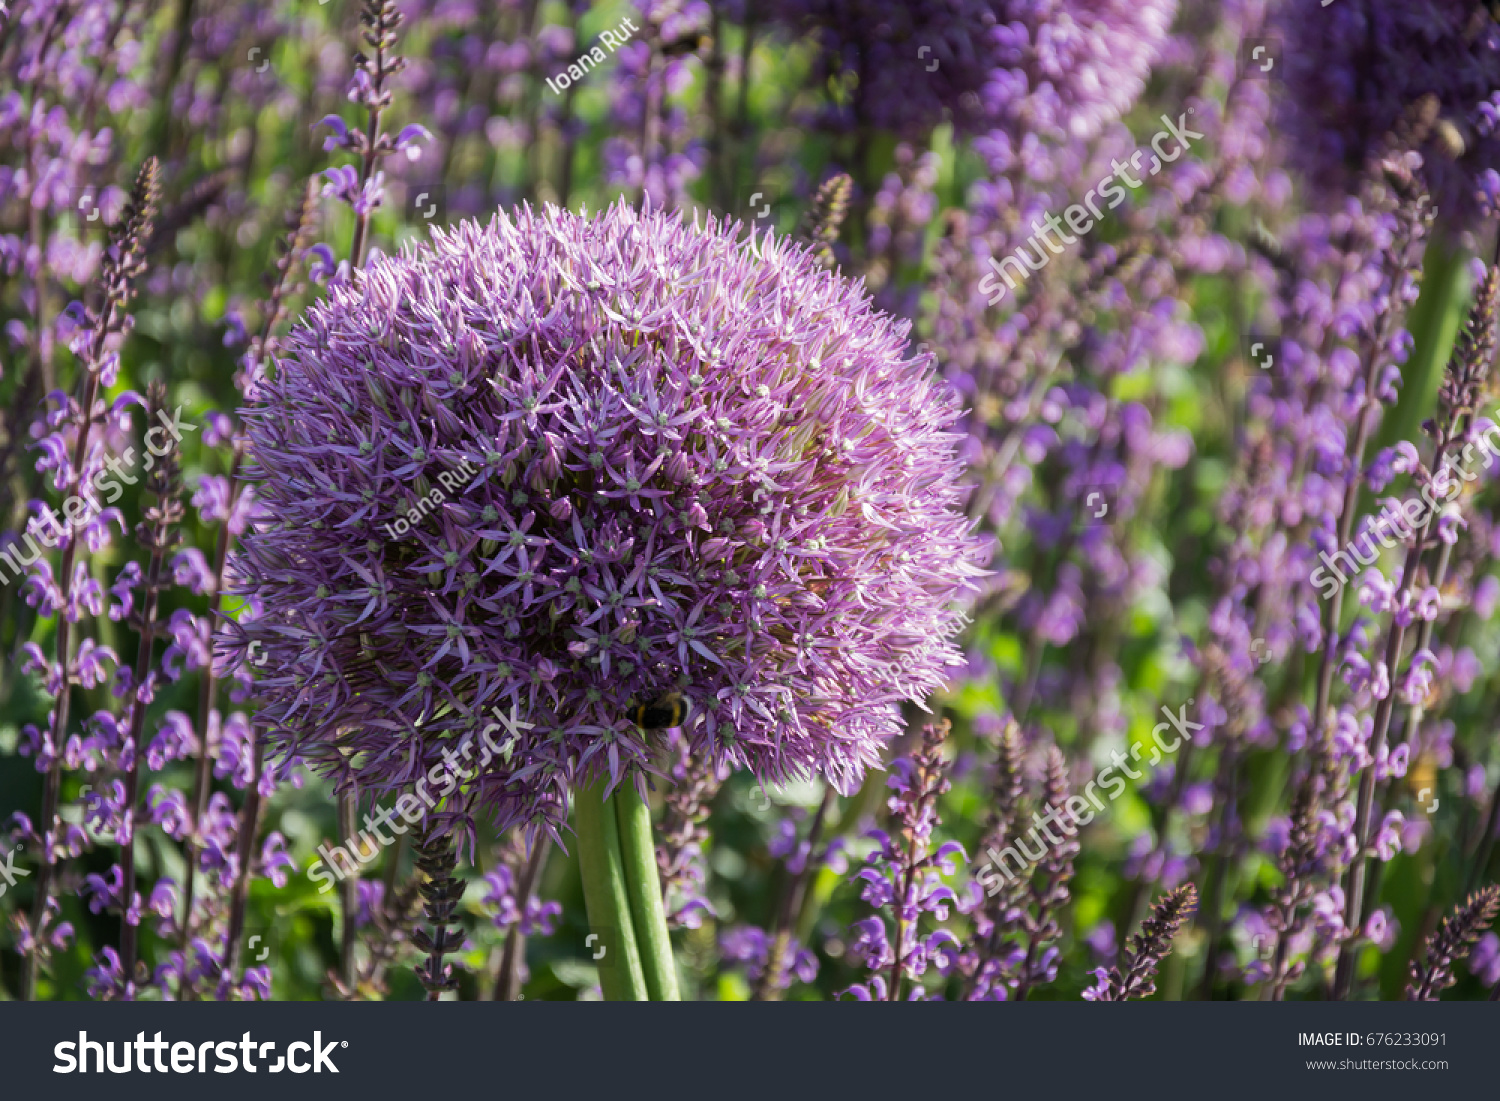 Beautiful purple allium flower green natural stock photo royalty beautiful purple allium flower with green natural background perfect image for pink alliums flowers mightylinksfo Image collections